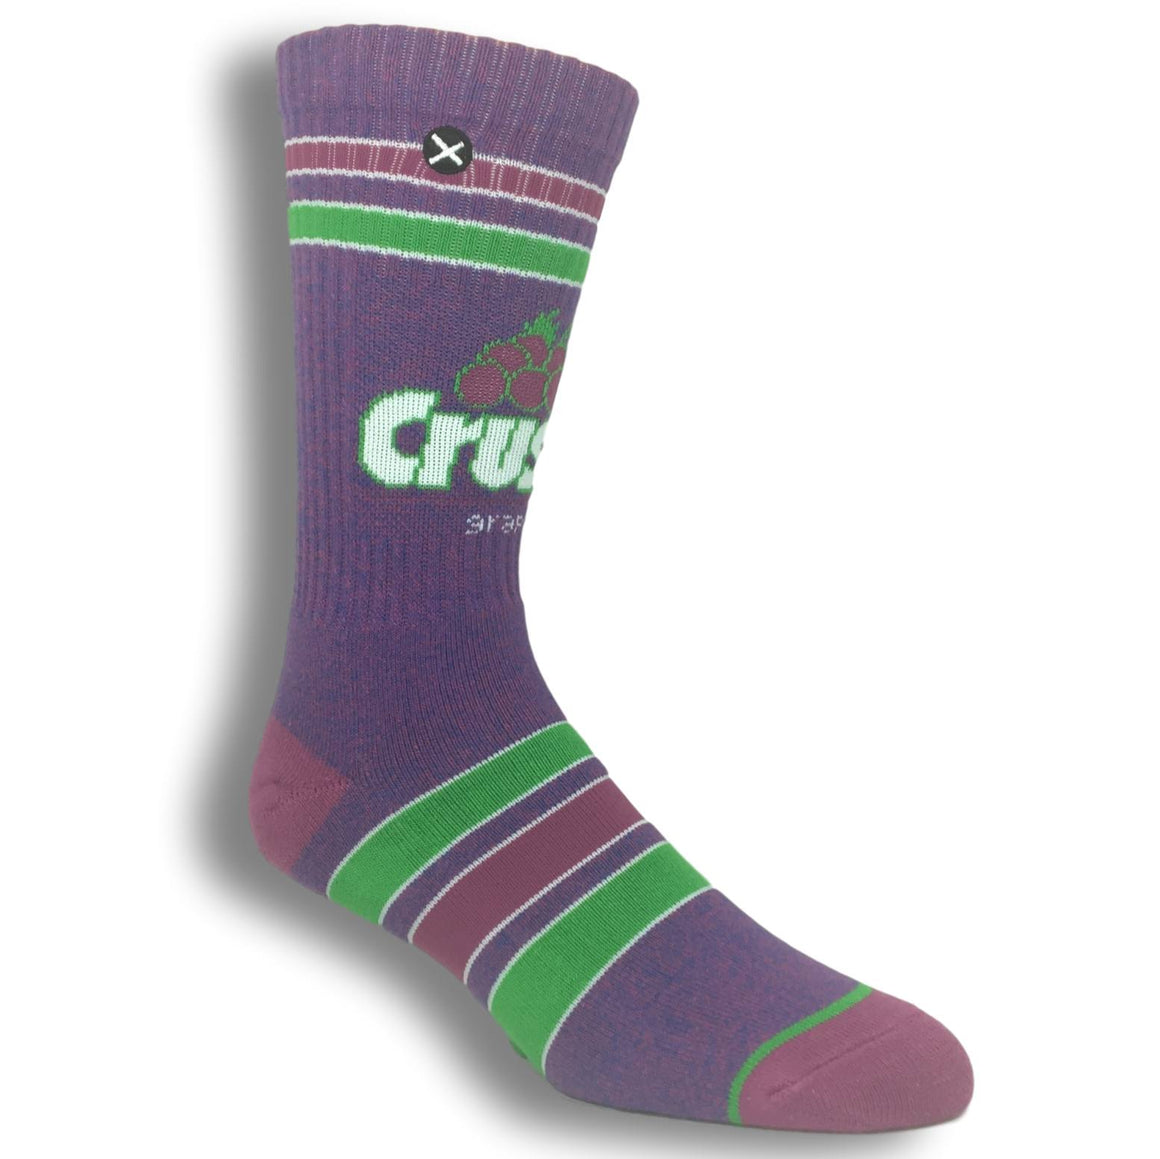 Grape Crush Logo Socks by Odd Sox - The Sock Spot